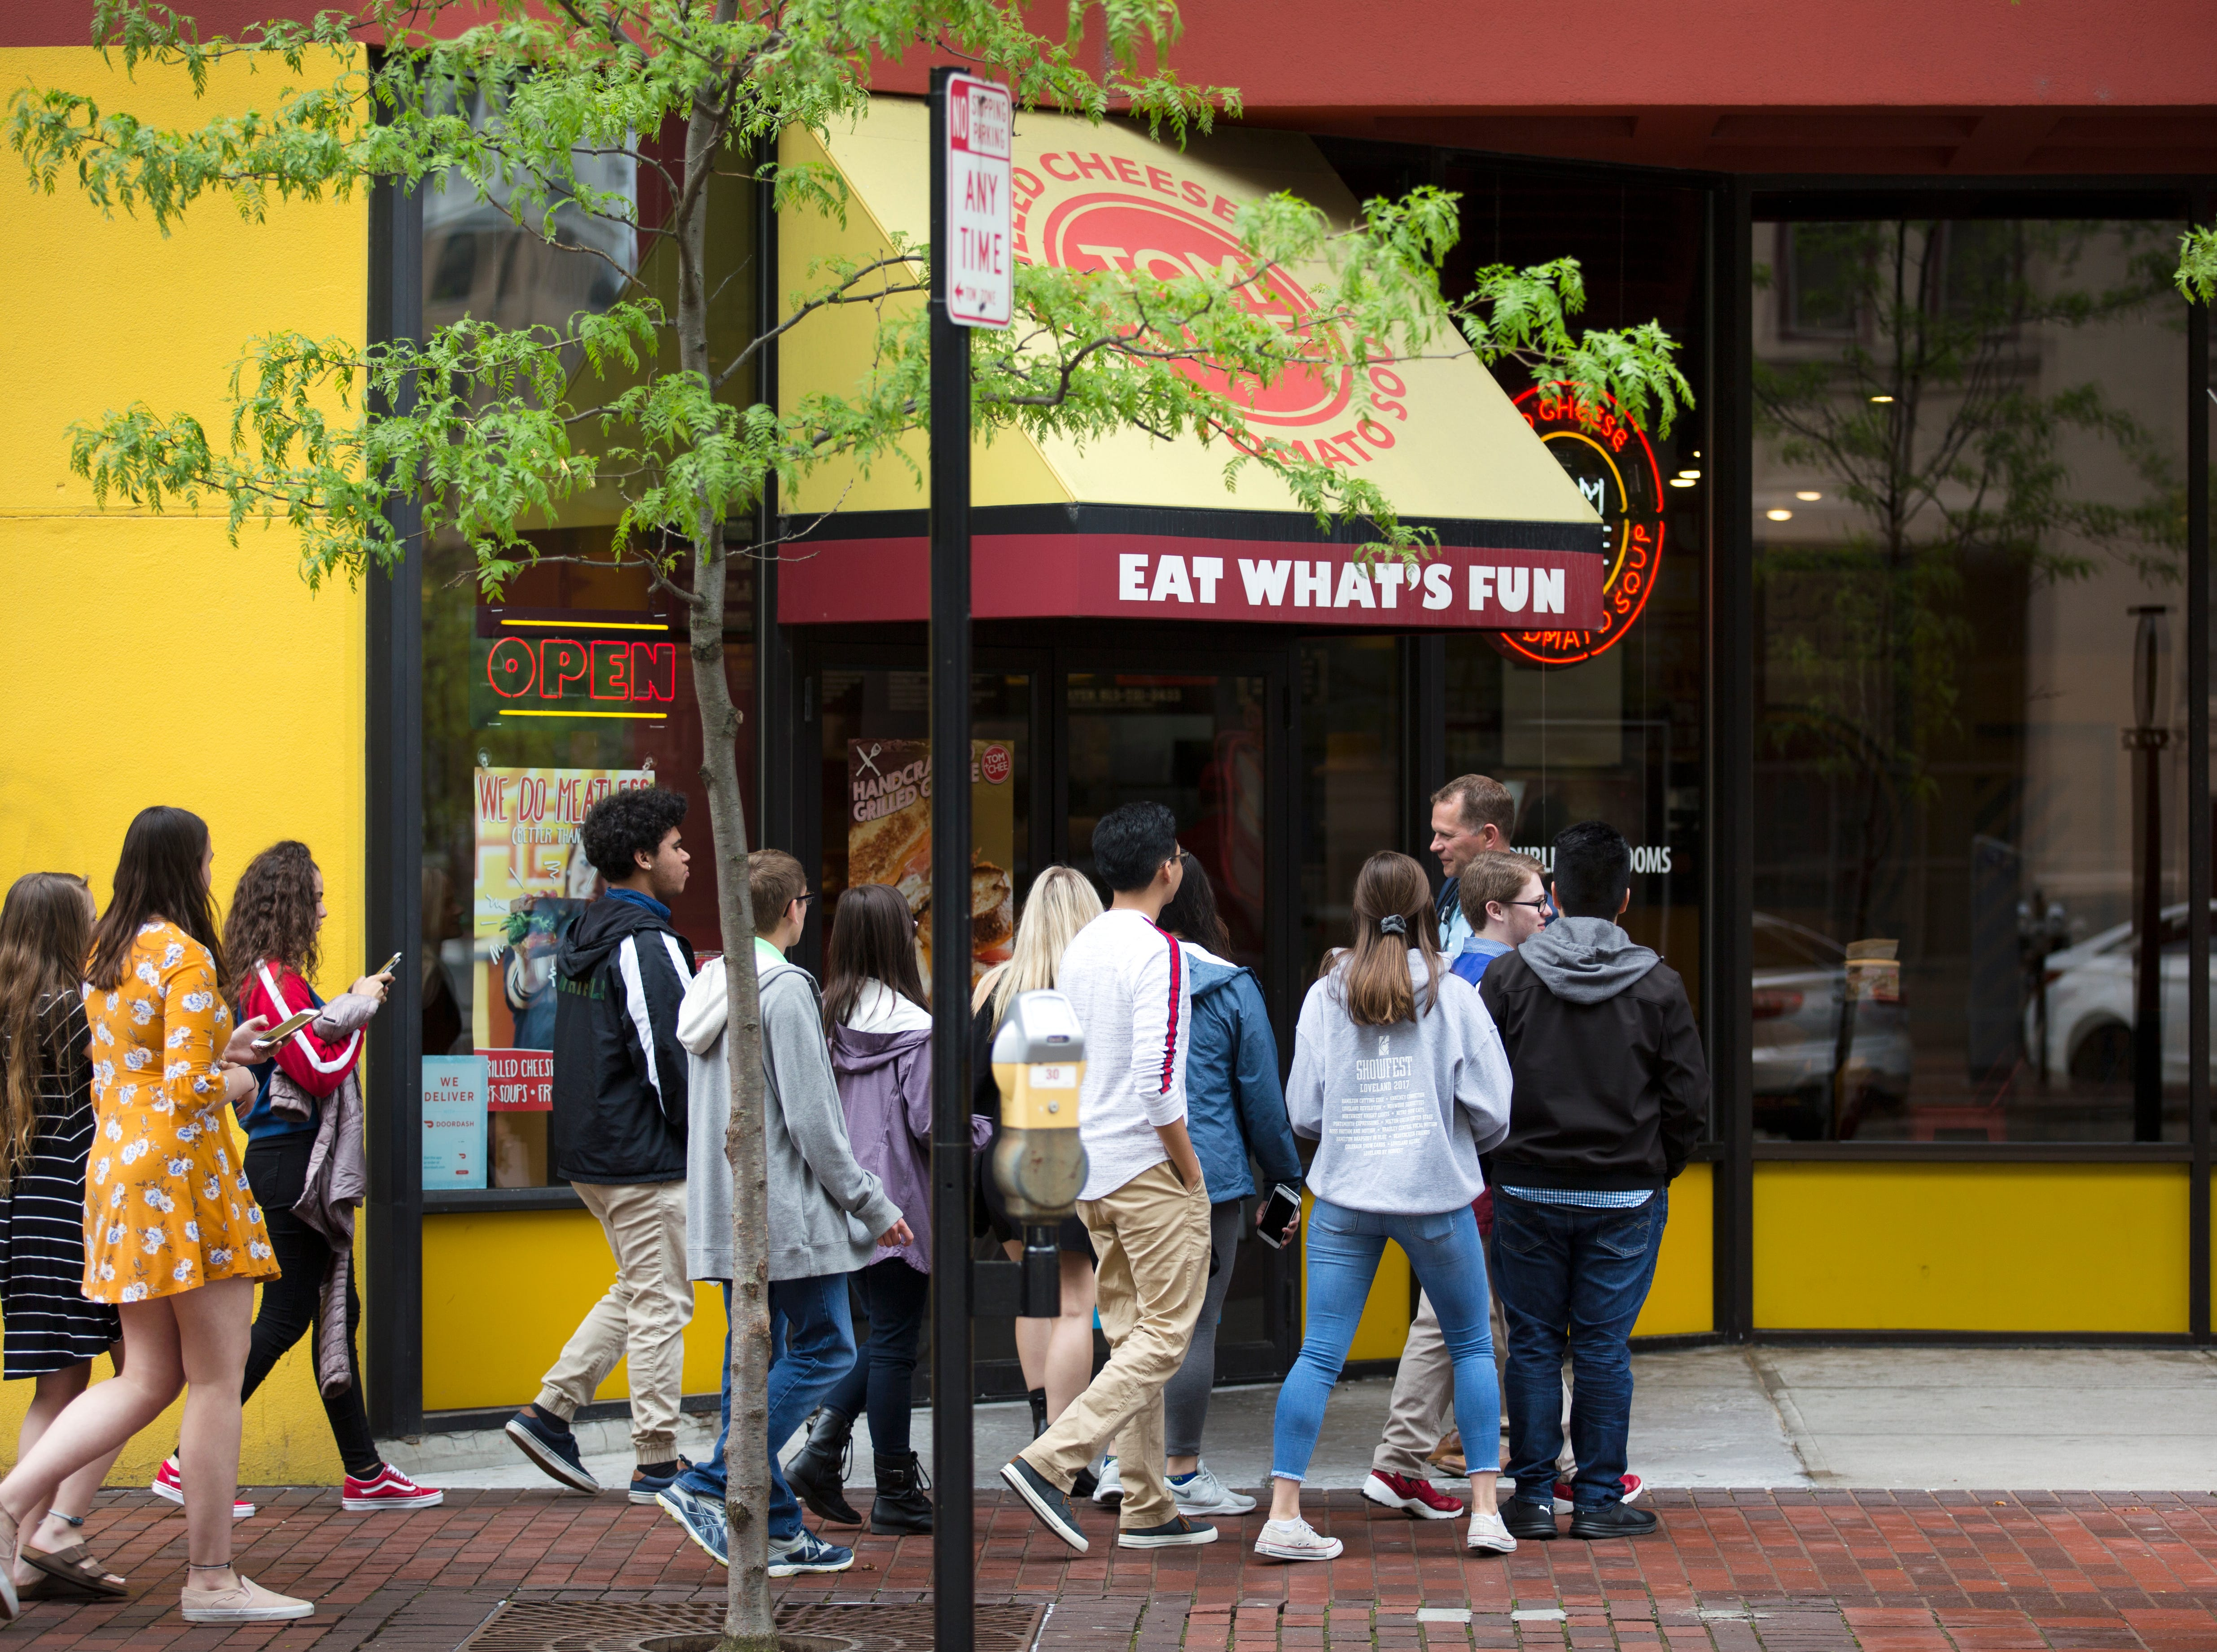 A group of youths head into Tom + Chee on Court Street in downtown Cincinnati on Take Your Daughters and Sons to Work Day on Thursday, April 25, 2019. Tom + Chee begin in 2009 in a tent on Fountain Square. In 2017, Gold Star Chili acquired the unique restaurant, which is famous for it's grilled cheese donut. Just across the street The Kroger Co. is building a new 18-story mixed-use development that will include 139 apartments. The grocery portion will open in the fall. The 560-space garage is already open to the public. It seems fitting for Kroger to bring back the groceries to Court Street. The street started as the Canal Street Market back in 1829. The market operated between Vine and Walnut Streets. It lasted until 1915.